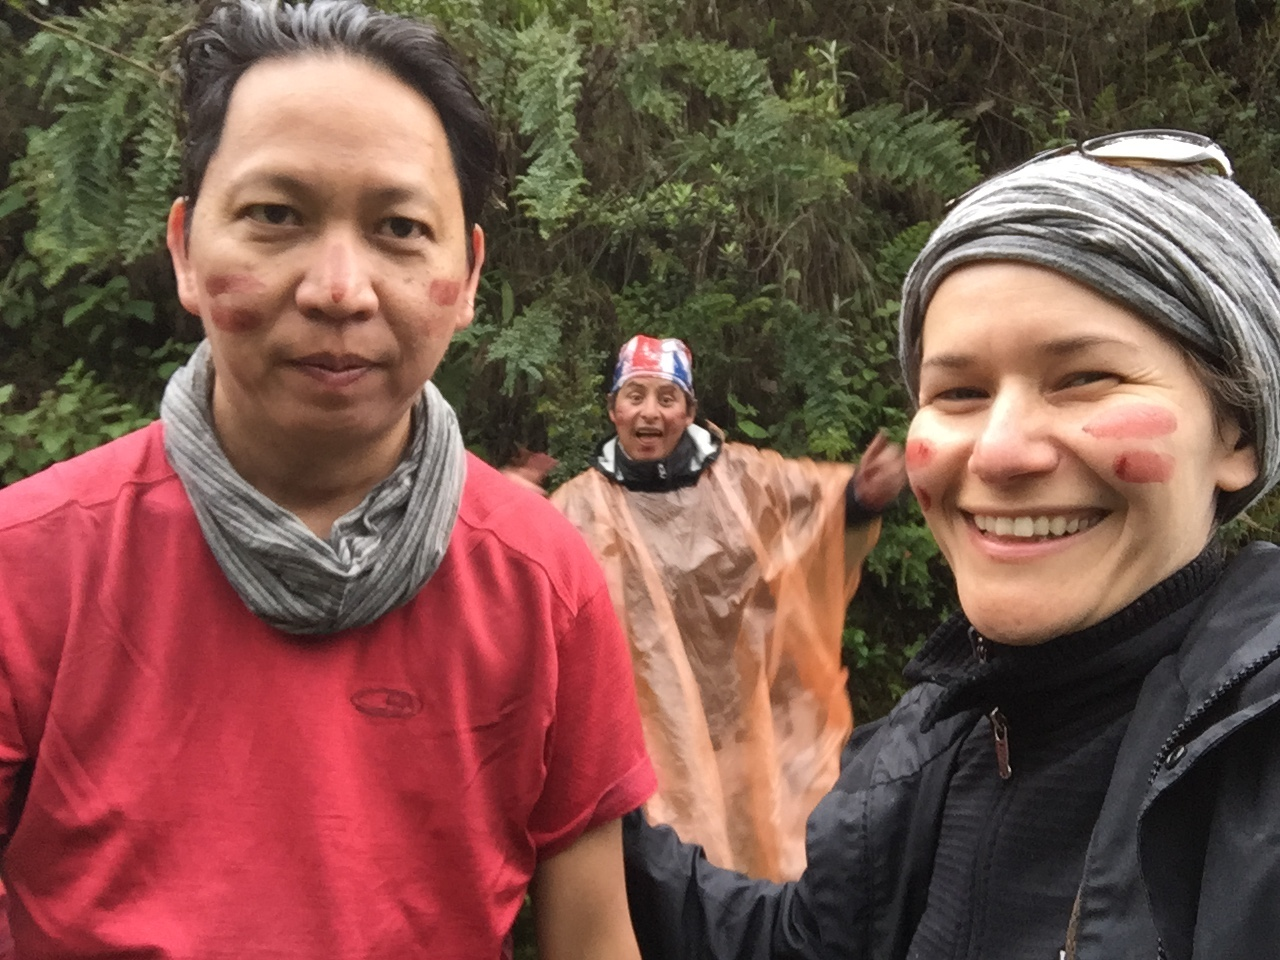 "After spending the first two days in the high Andes we descended into the jungle. One of our guides, Oscar, made finger paint with berries from the trees, which he then offered to apply to our faces ""the way the Inca warriors did."""